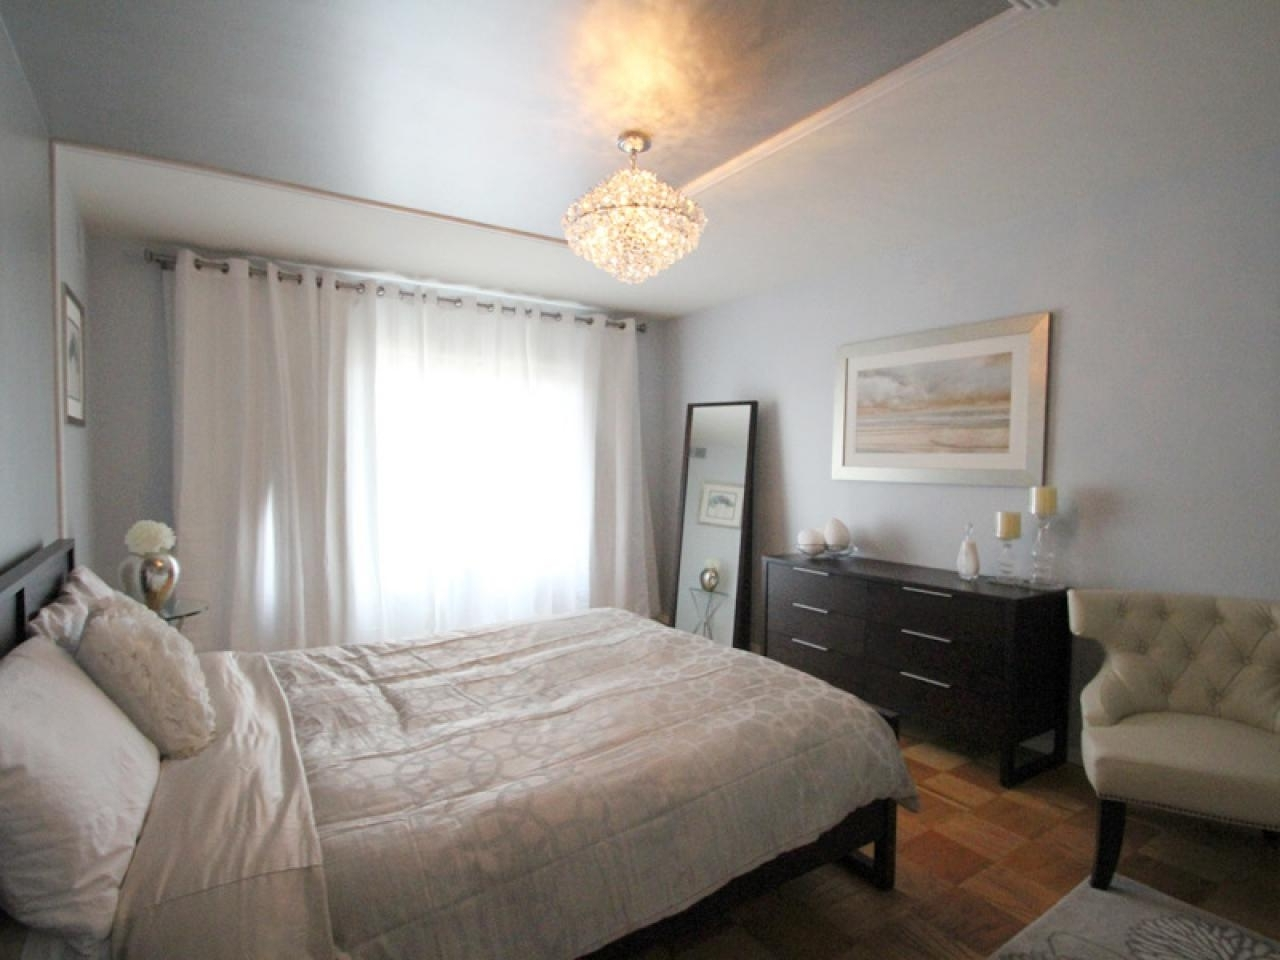 Hgtv Intended For Chandeliers In The Bedroom (View 16 of 20)